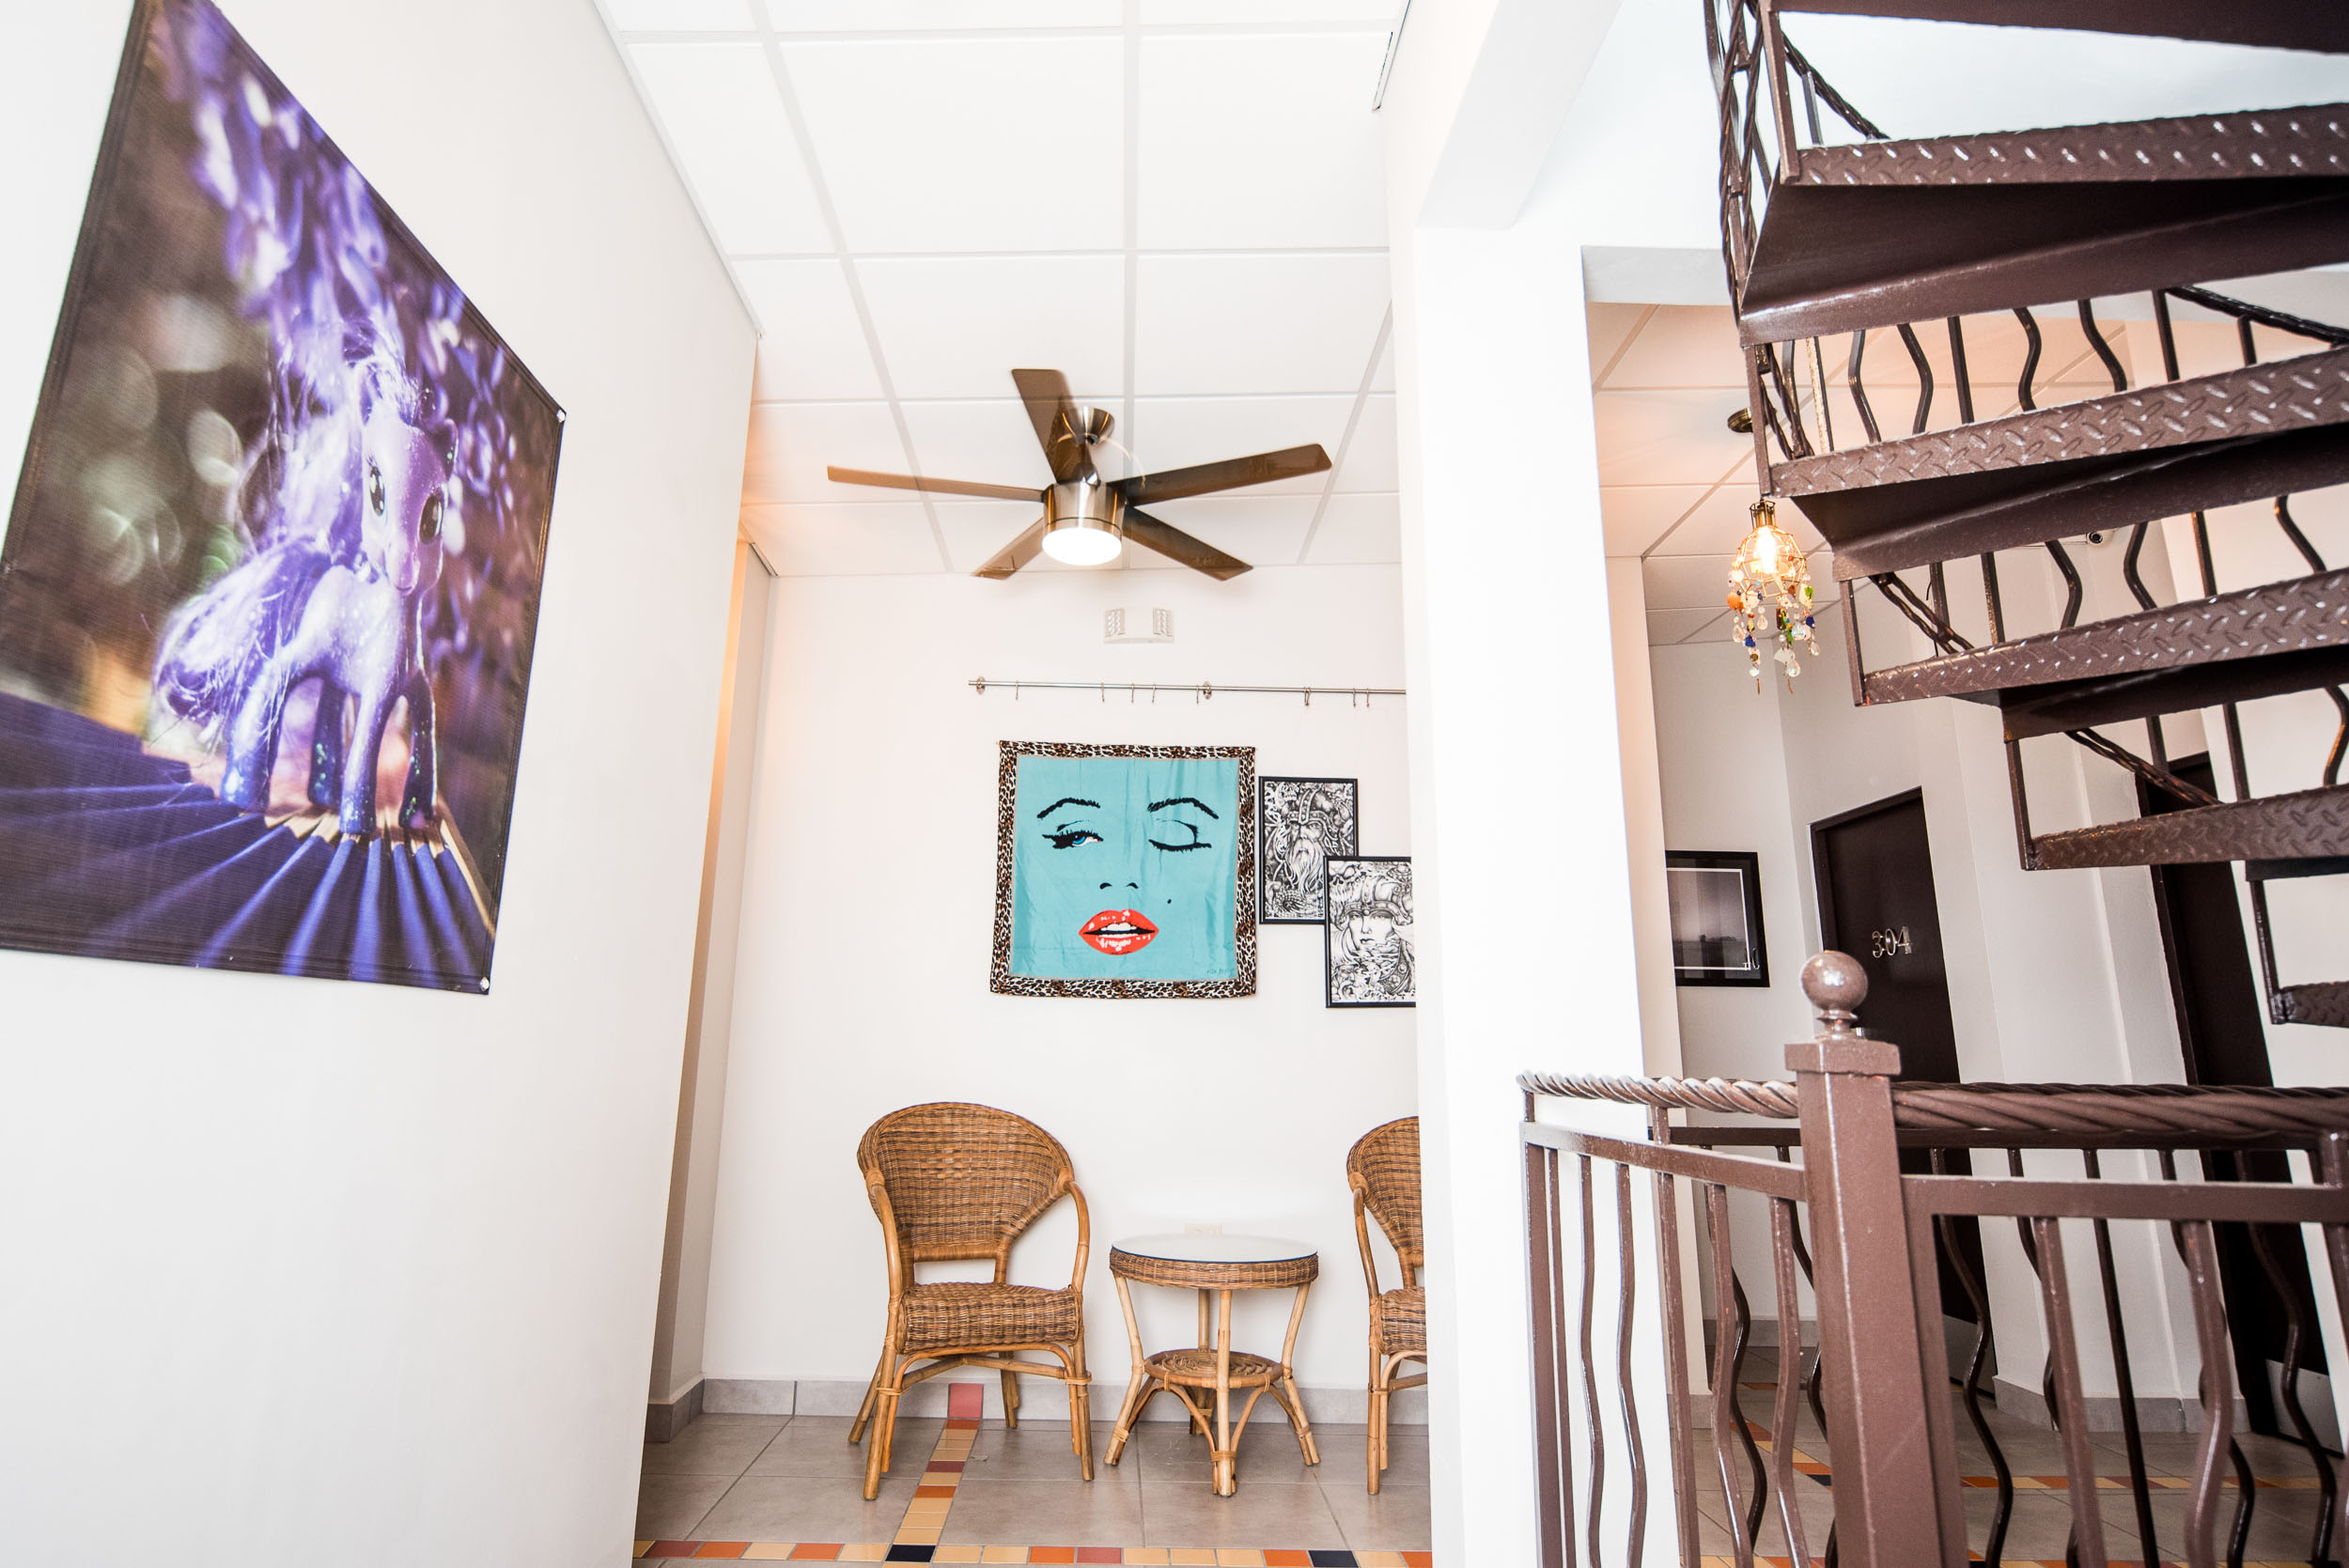 Third floor connection space and the stairway to heaven